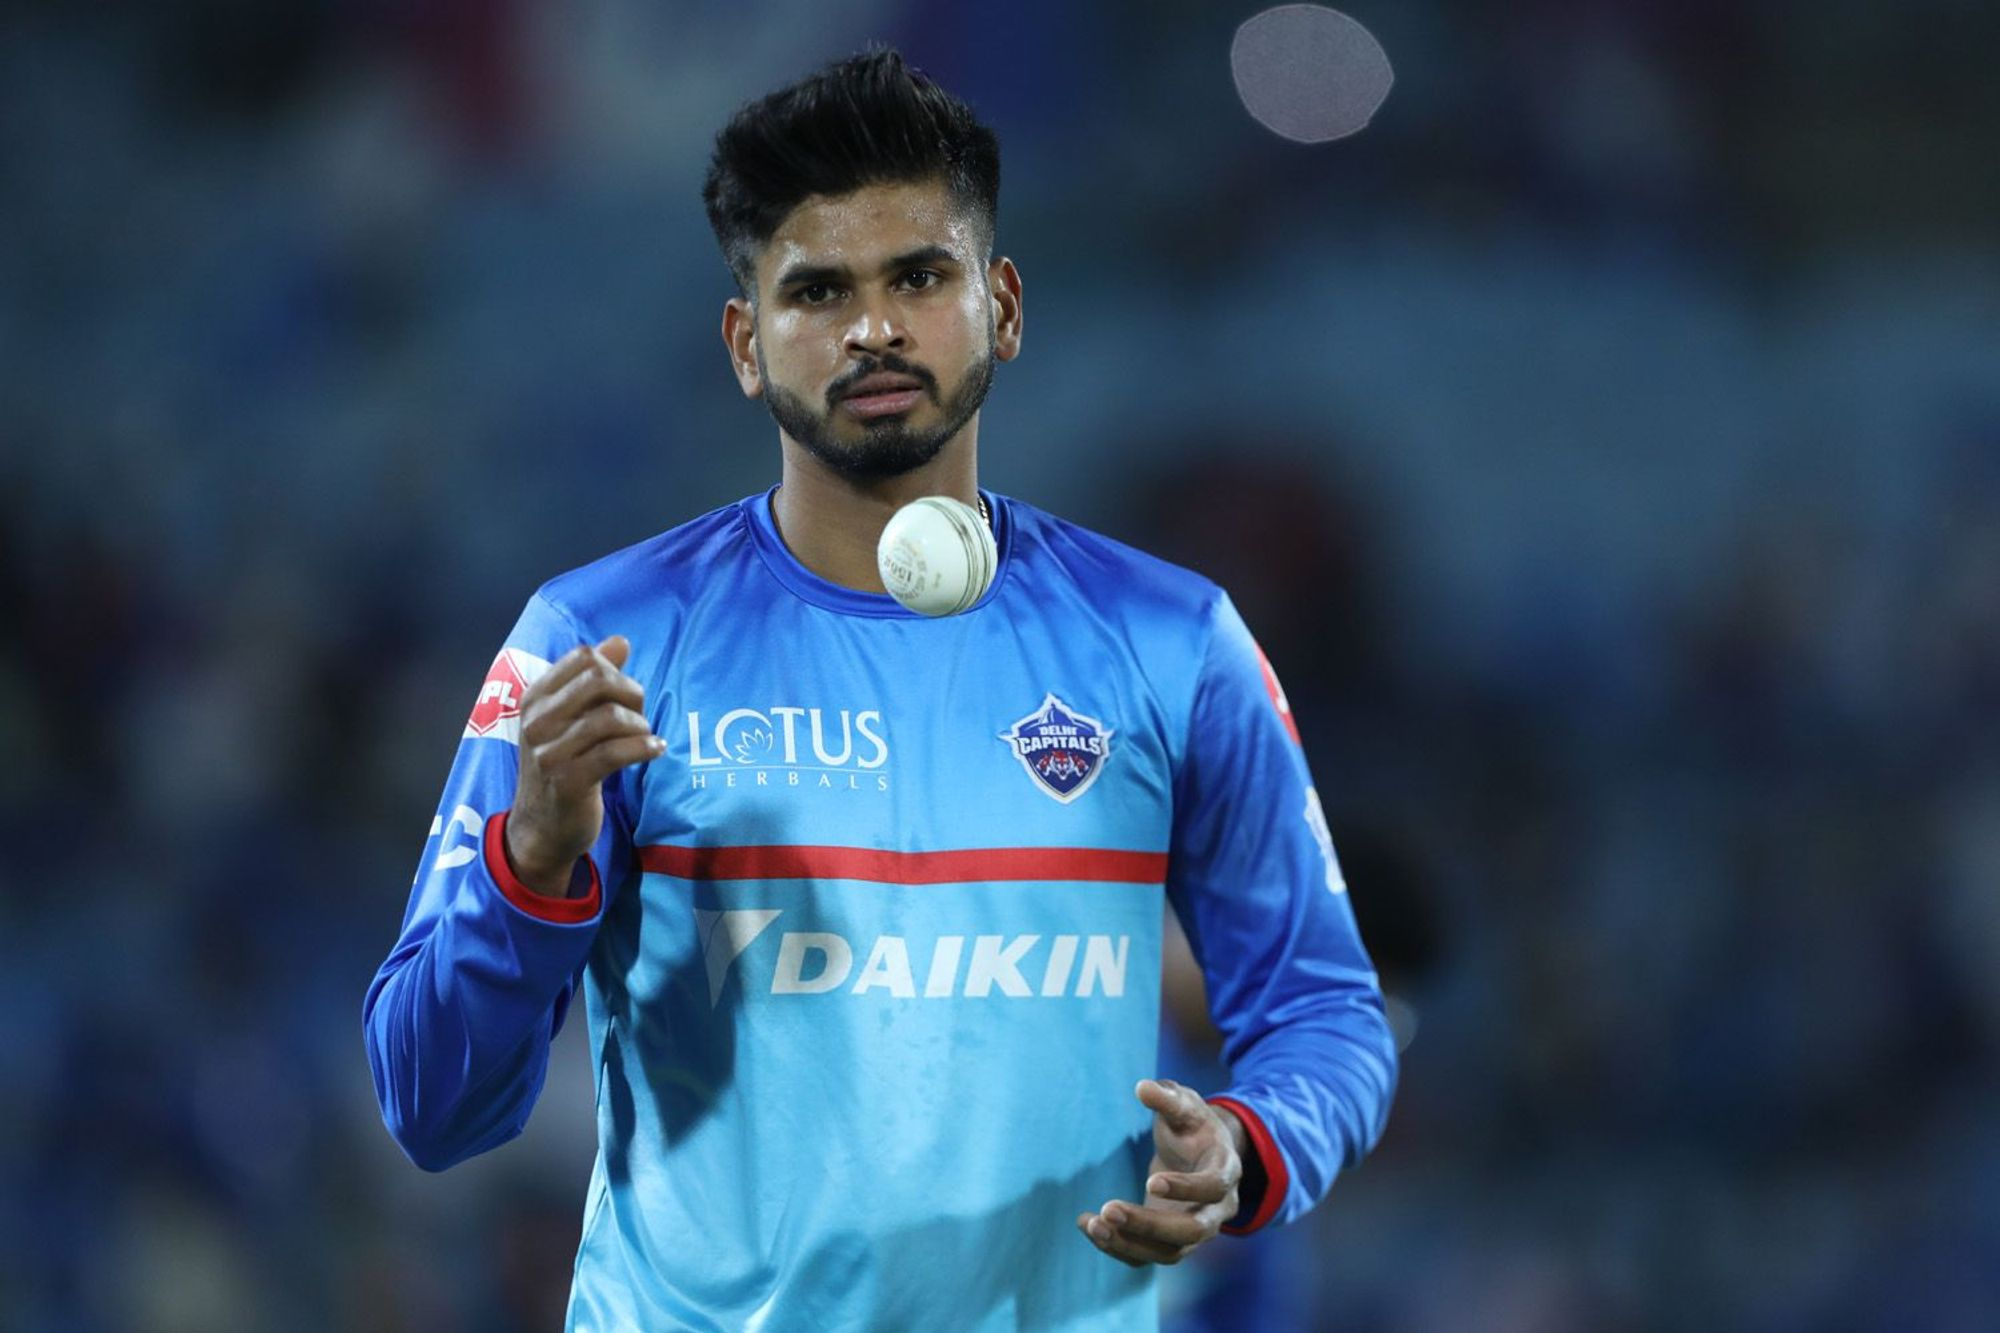 Last two games have been disappointing says Shreyas Iyer